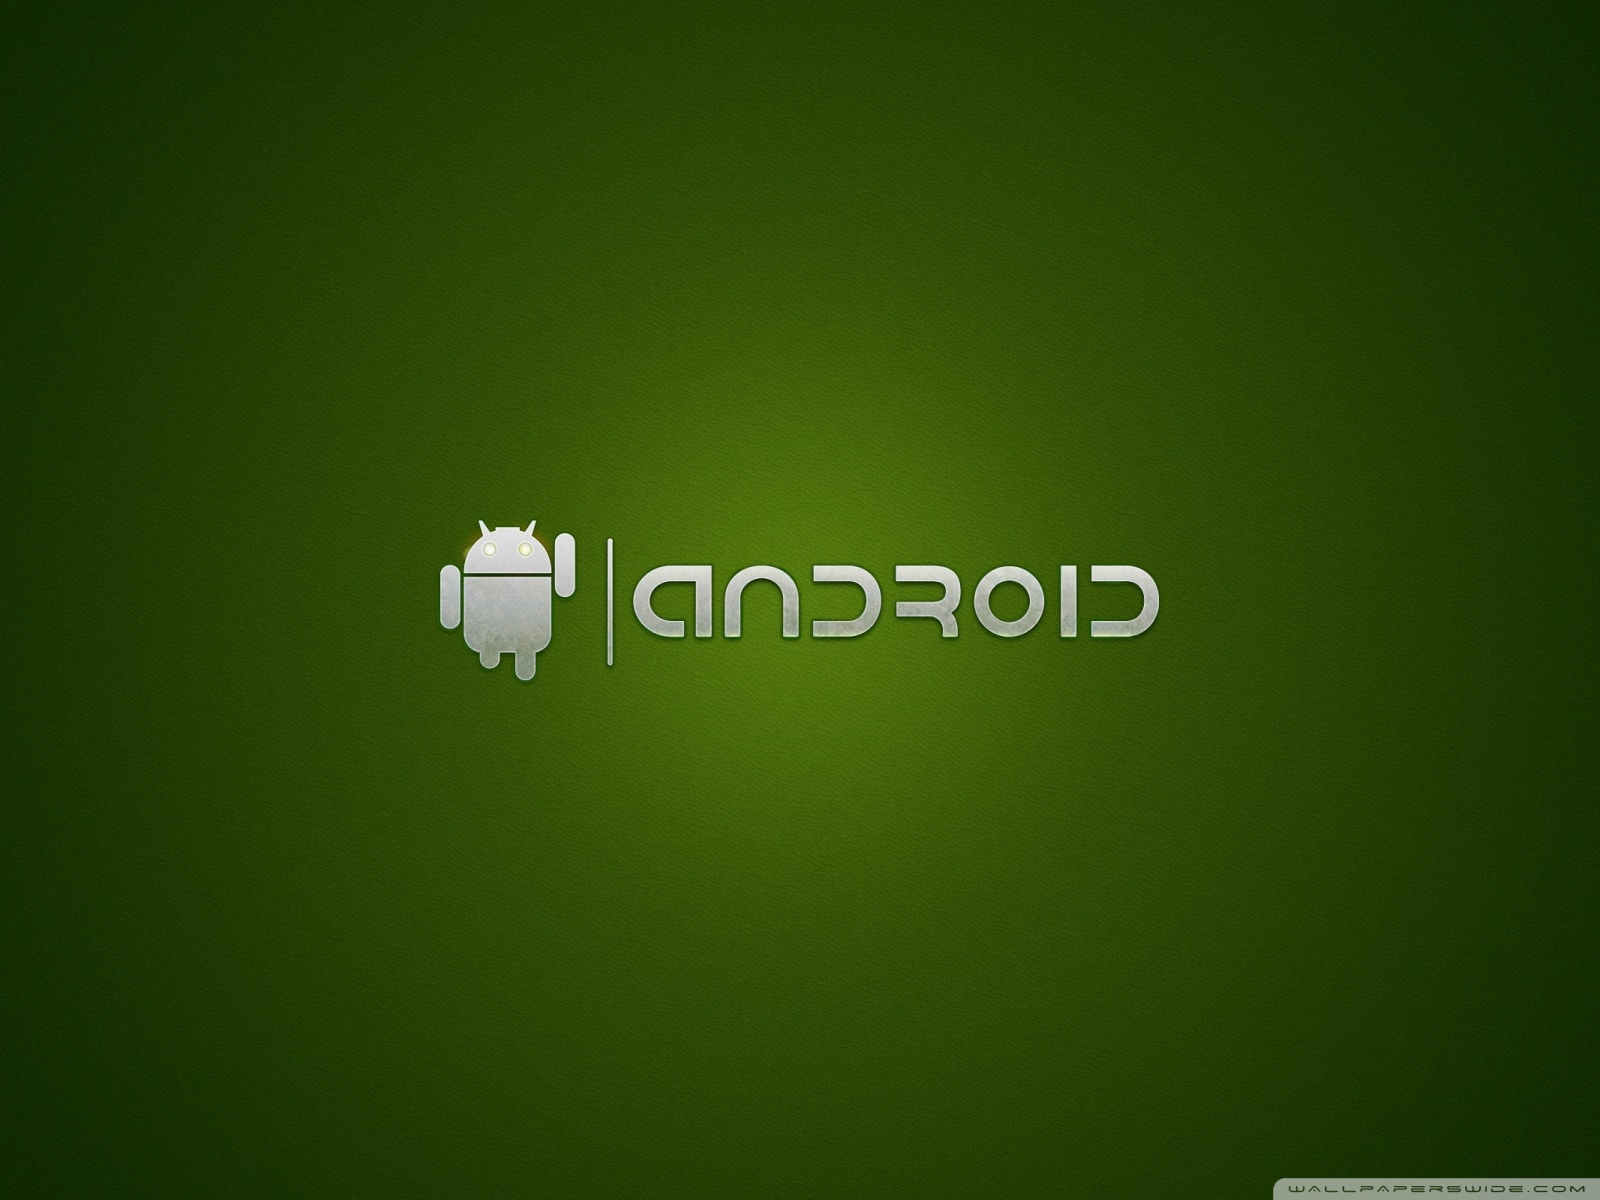 Free Android logo greem phone wallpaper by supersoccerfreak143